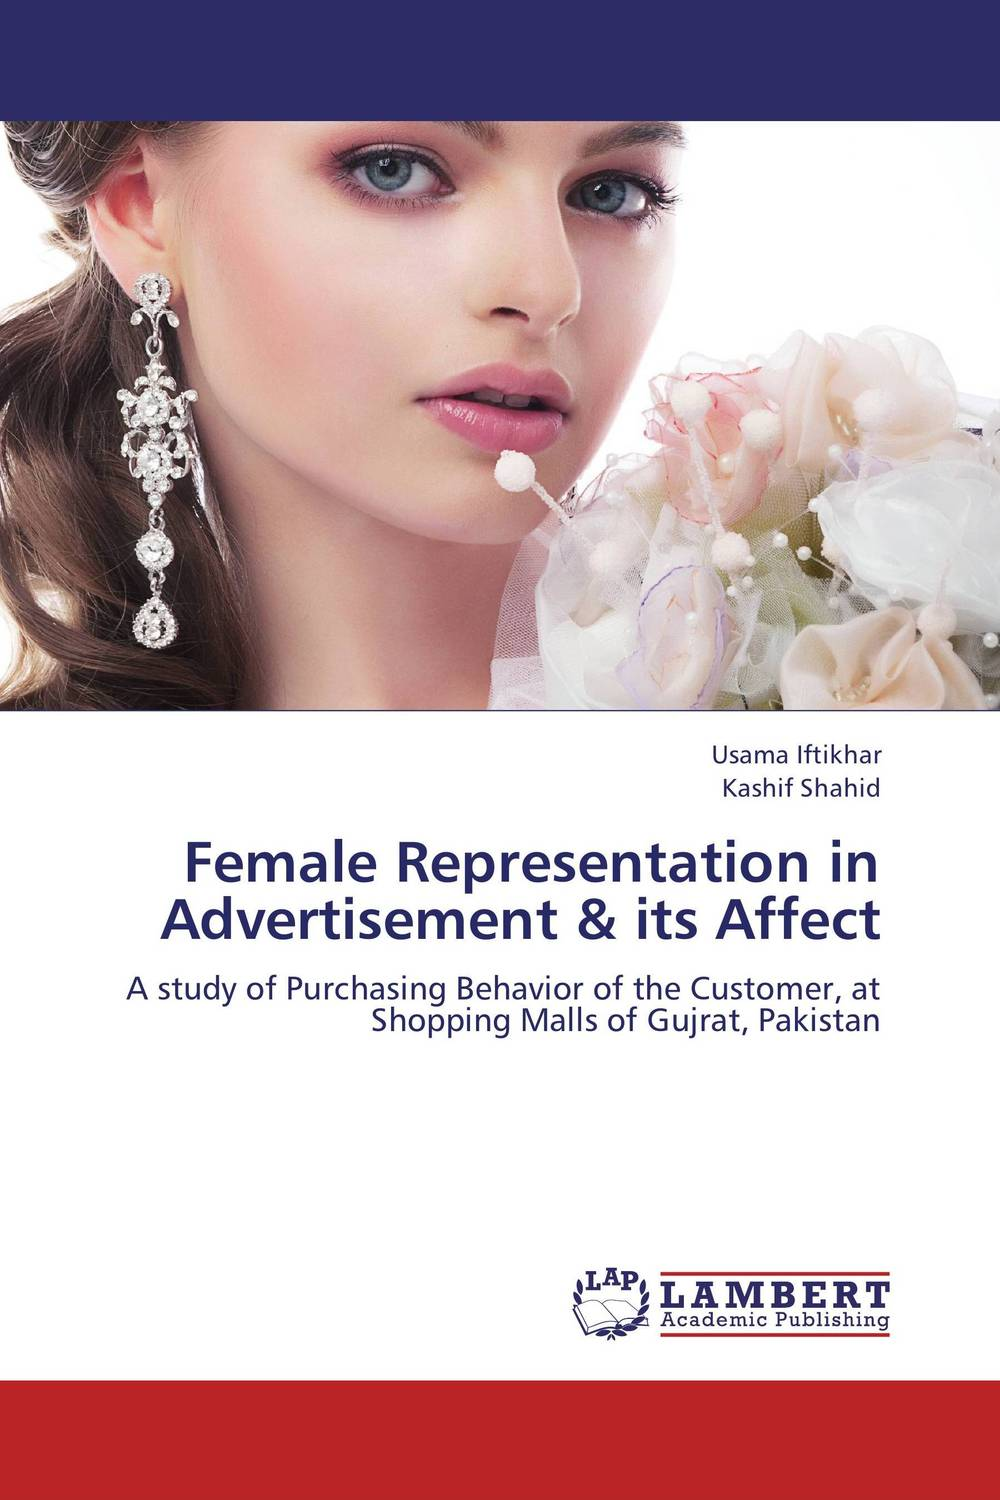 Female Representation in Advertisement & its Affect the effect of advertisement on consumer behavior and brand preference